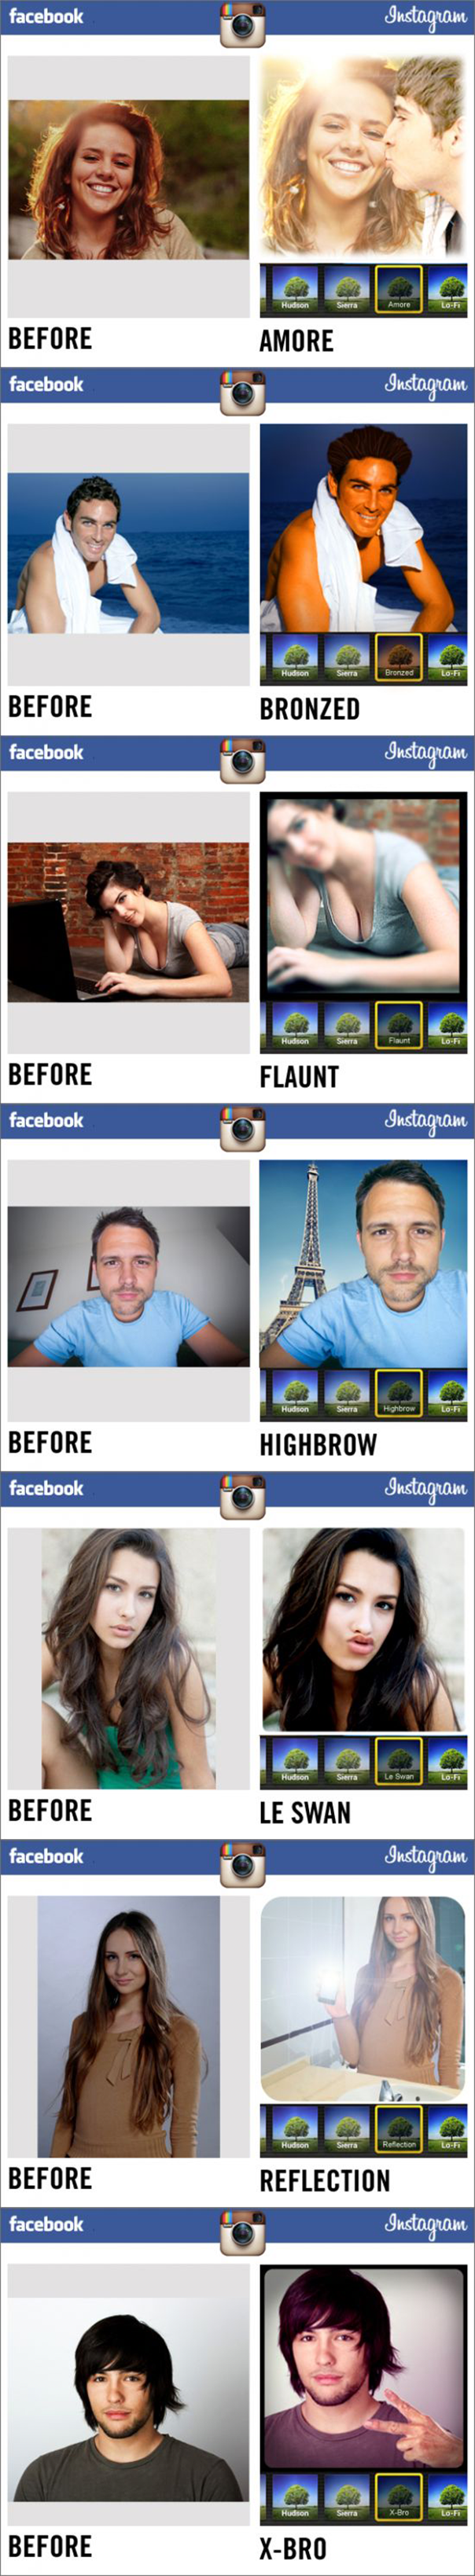 Instagram : Filtres de photos sur Facebook